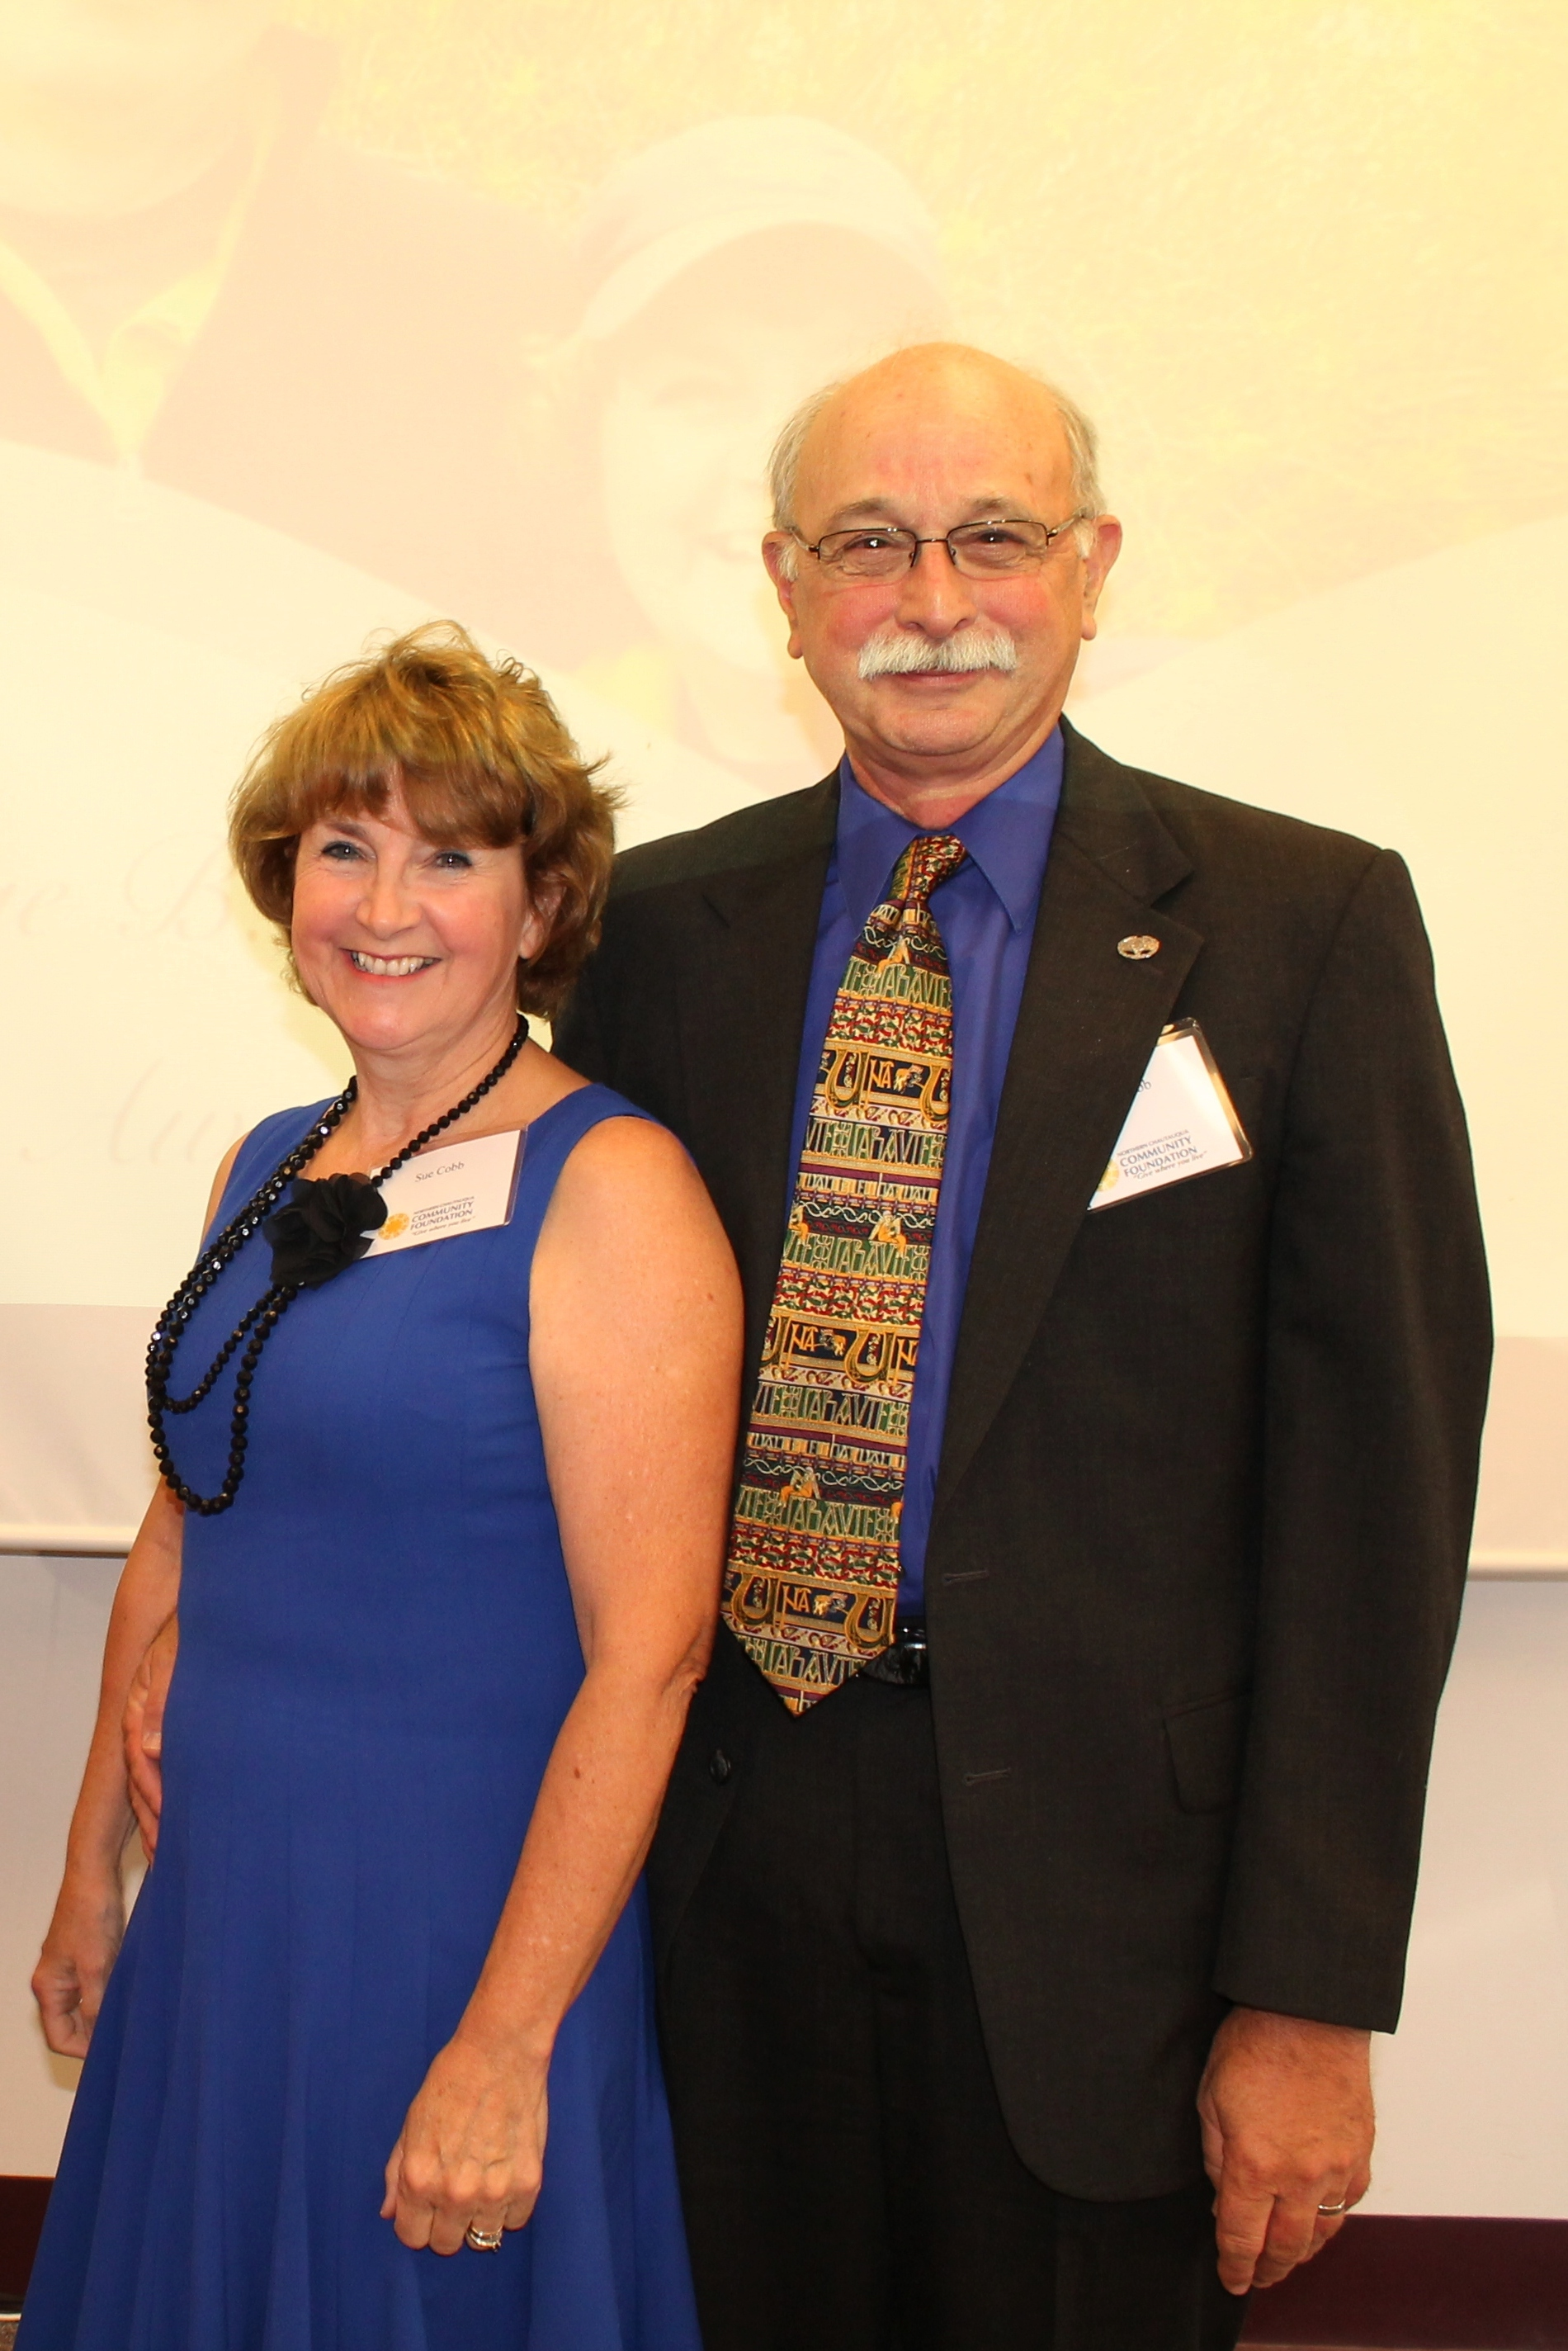 2013 - The Cobbs - Sue and Steve Cobb were chosen for the 2013 Footprints Award for their contributions to not only the youth in Fredonia but to the community at large.As a major force in Quest Program in the Fredonia Middle School, the Cobb's dedication allowed the program to expanded into Brocton Central School. They donate time to prepare students through Thursday classes for months before hikes; meeting with parents, a one-day hike, a two-day hike and ending with a three-day hike. Through the Quest program, the Cobbs are developing future stewards of our natural environment and future leaders of our community.As with the Quest program, the Cobb's dedicate extra time to students participating in the Fredonia High School musicals. Steve assists with set design, building, creating, set finisher and stage crew manager while teaching students these skills along the way. Sue works along side Steve but also works on props and costumes while teaching students as she works.Steve served as the Deputy County Disaster Coordinator, on the Fredonia Village Board, is an EMT with the Fredonia Fire Department.Both Sue and Steve have gone out of their way as educators to support students in athletics and in student travel. The couple have also opened their home to foreign exchange students.